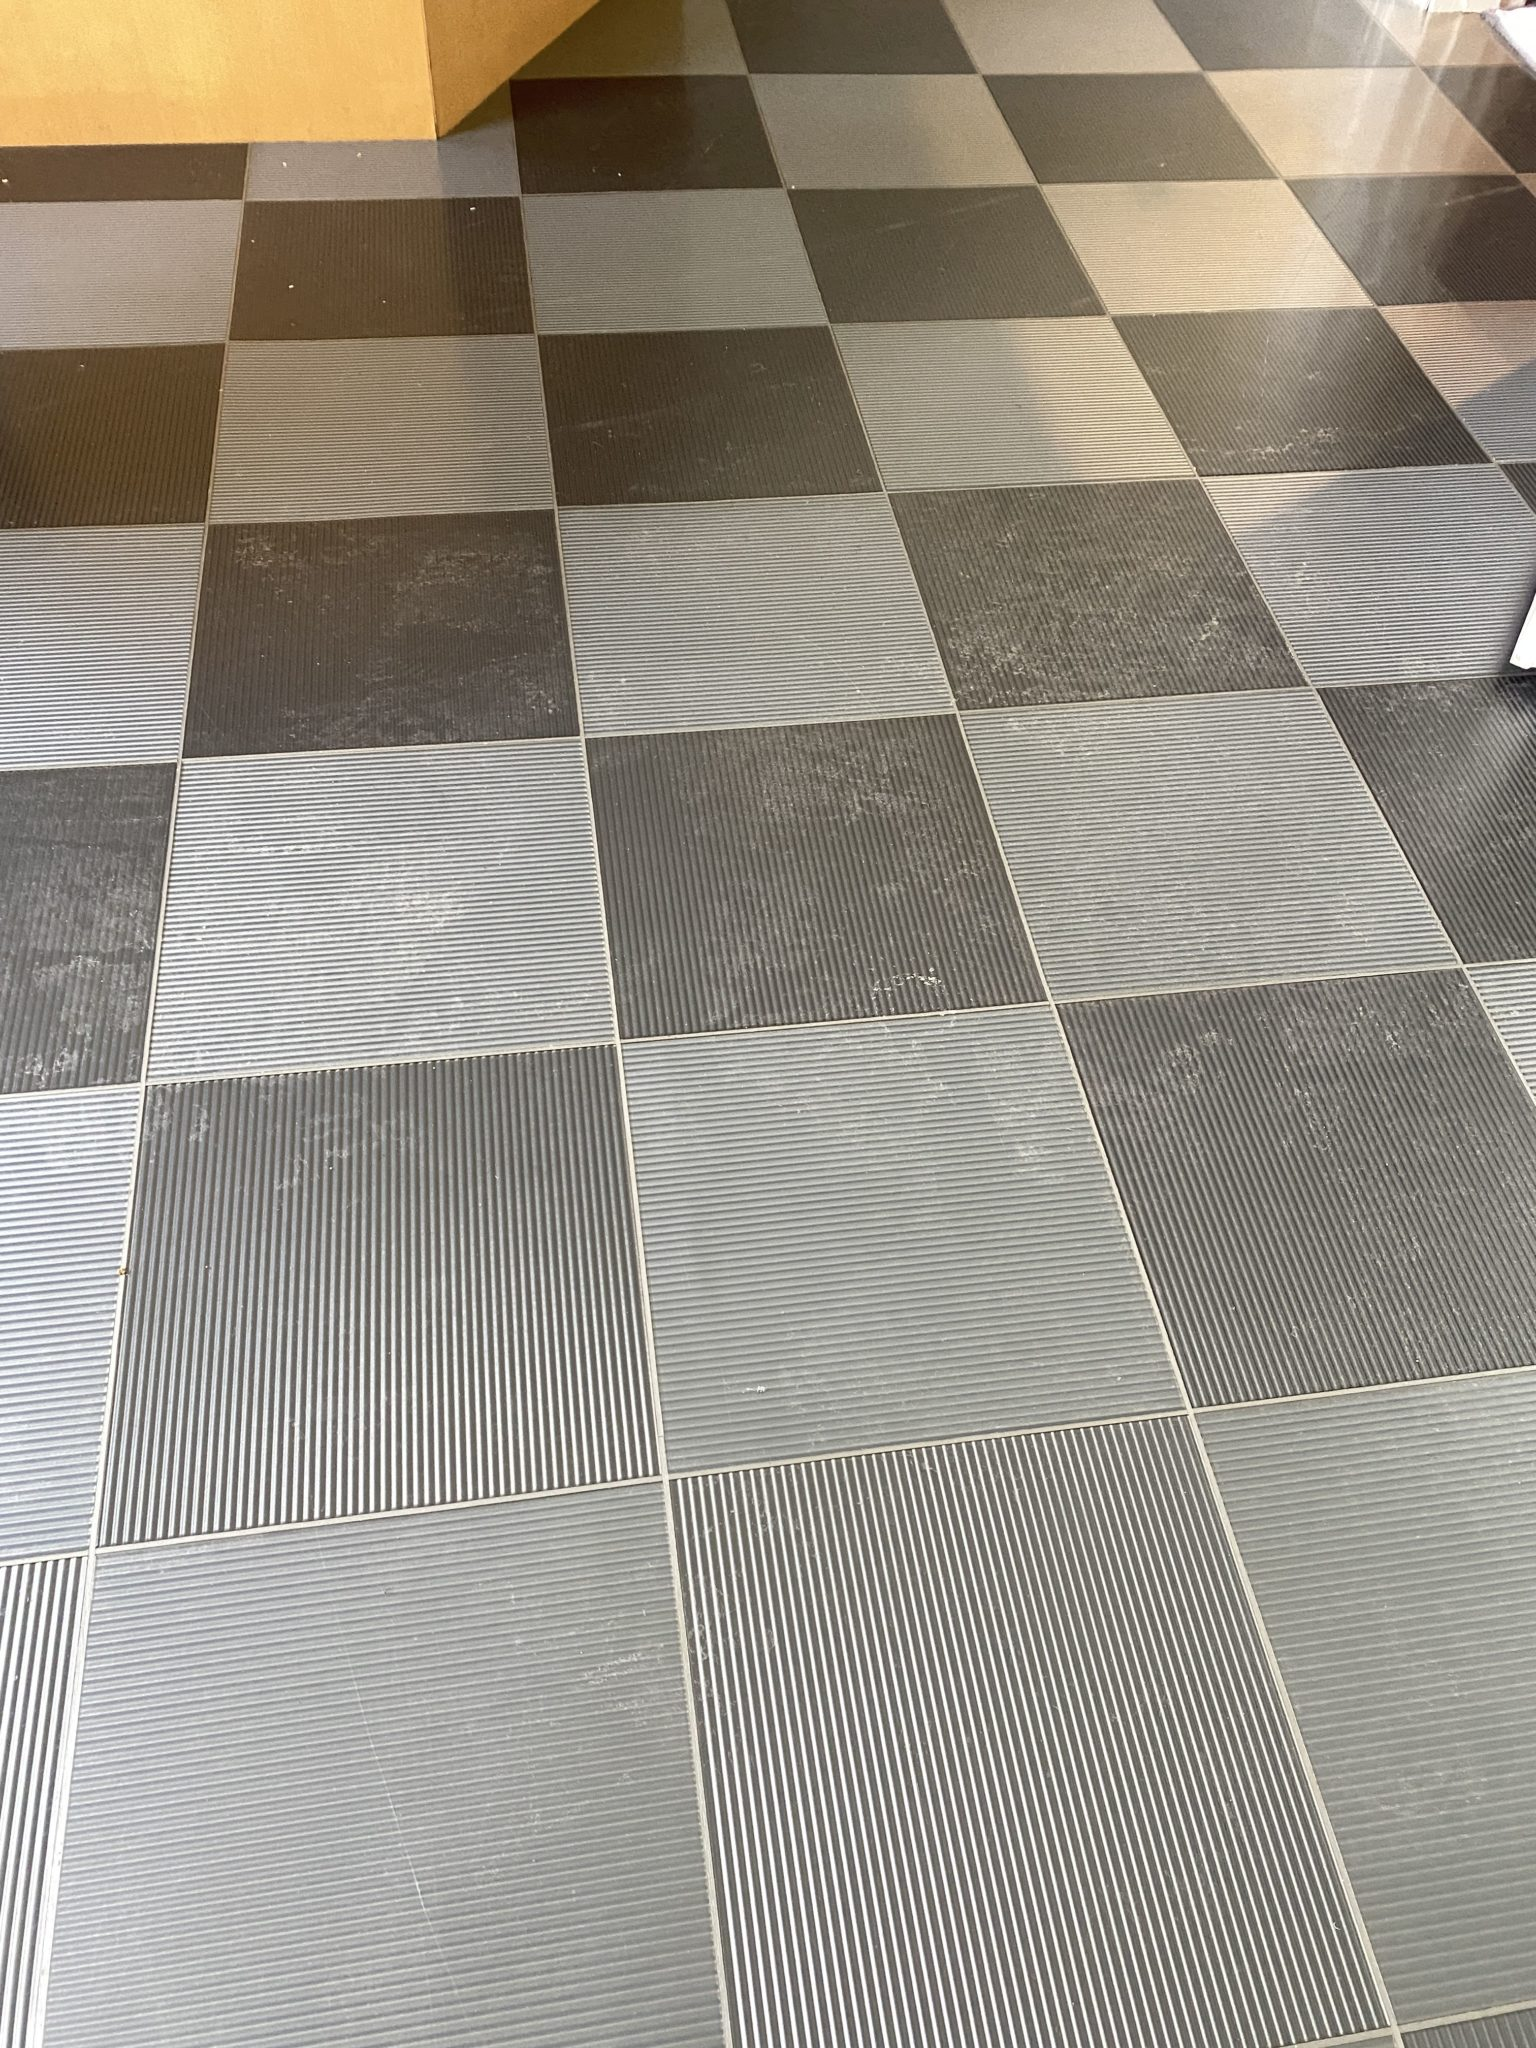 Removing polymer coating from Amtico floor. This is the before picture